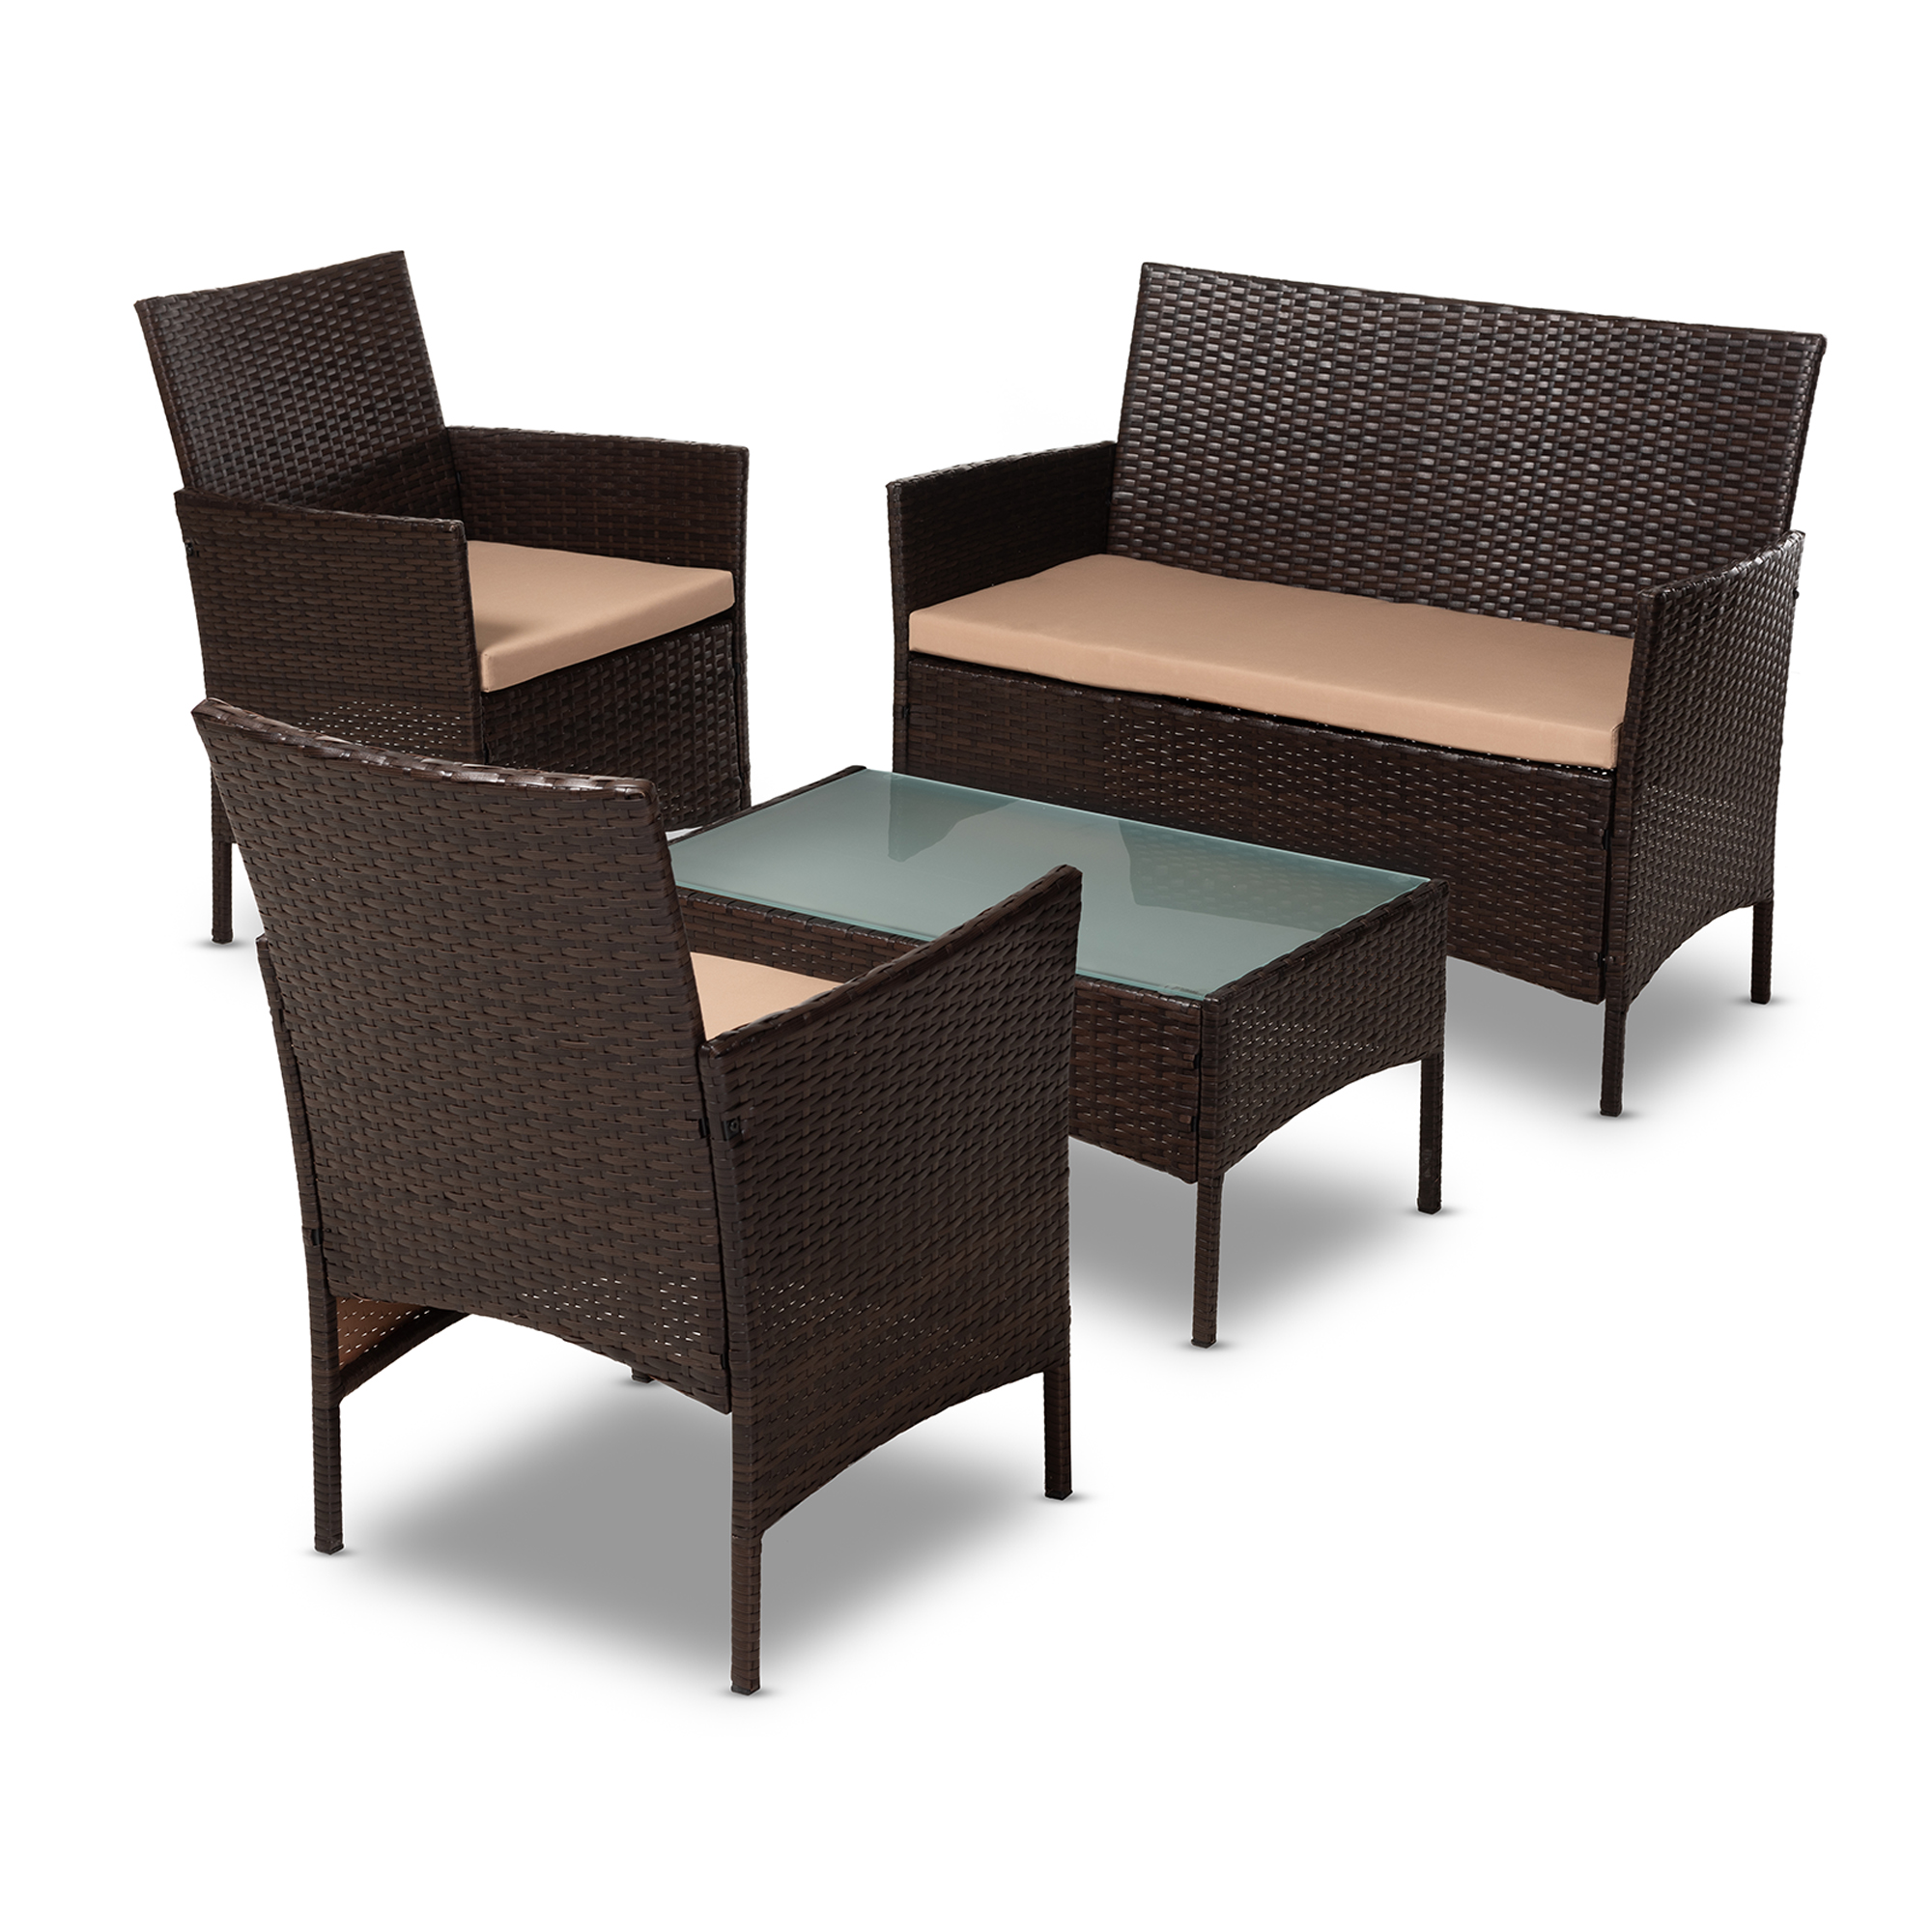 Baxton Studio Alois Modern And Contemporary Beige Fabric Upholstered Dark Brown Rattan 4 Piece Outdoor Patio Lounge Set